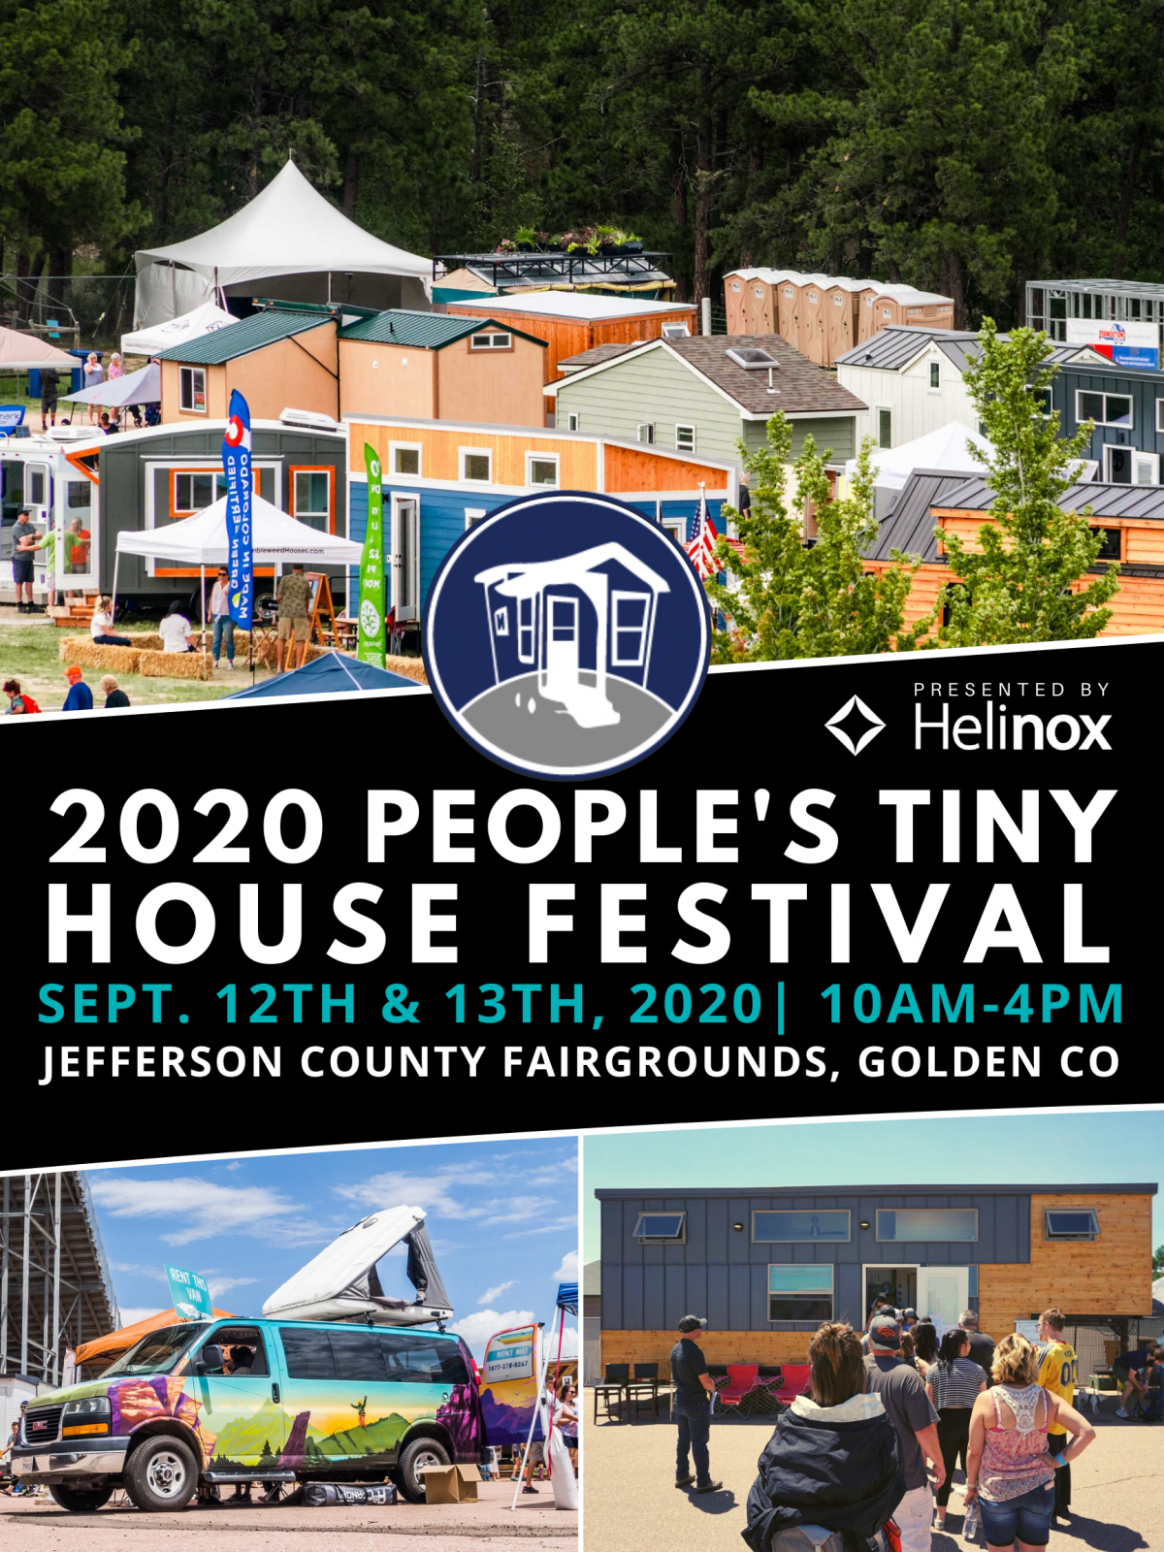 9 People's Tiny House Festival